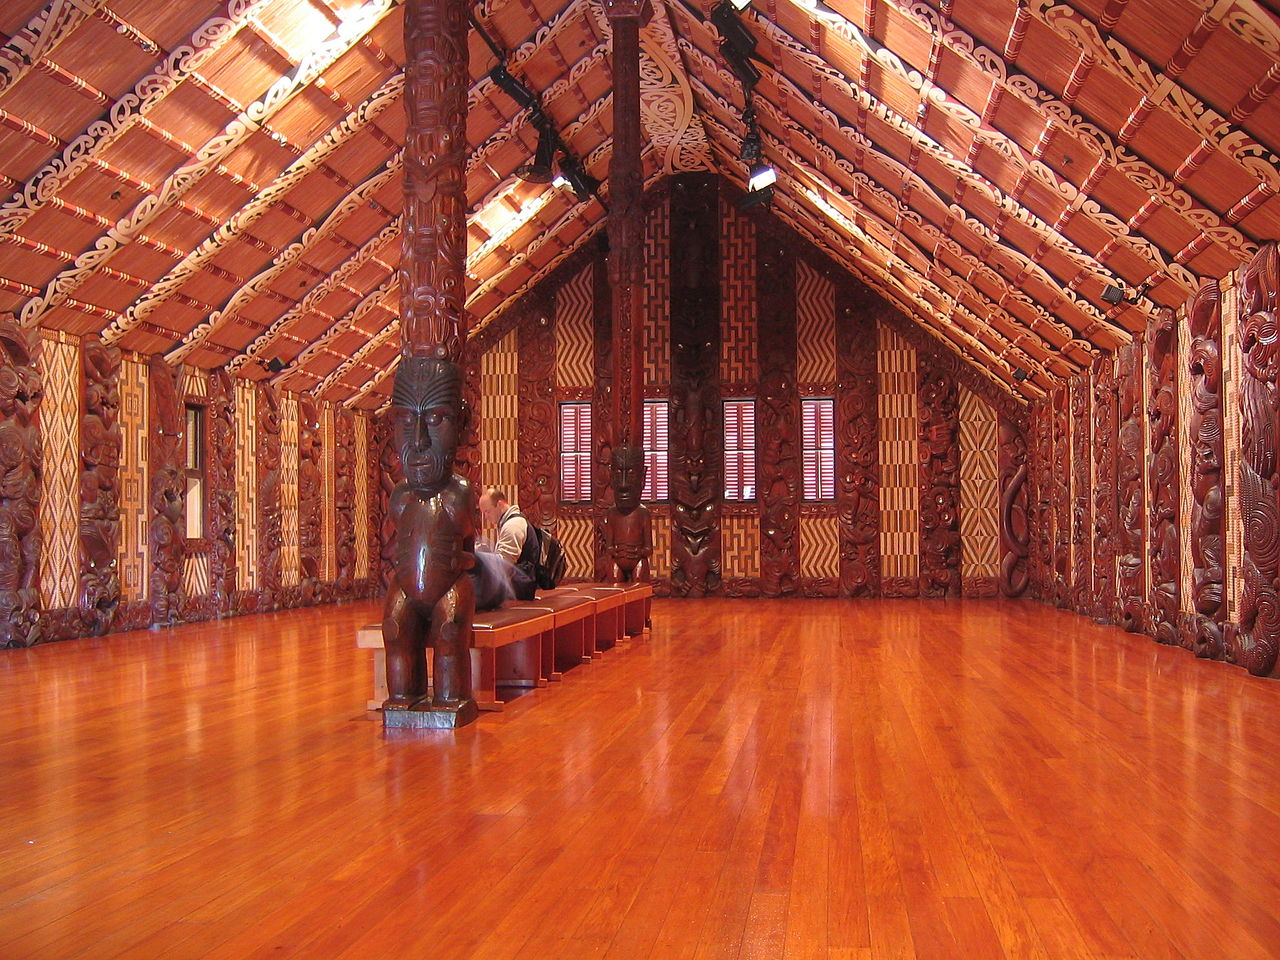 маори 1280px-Waitangi-Meeting-House-interior.jpg